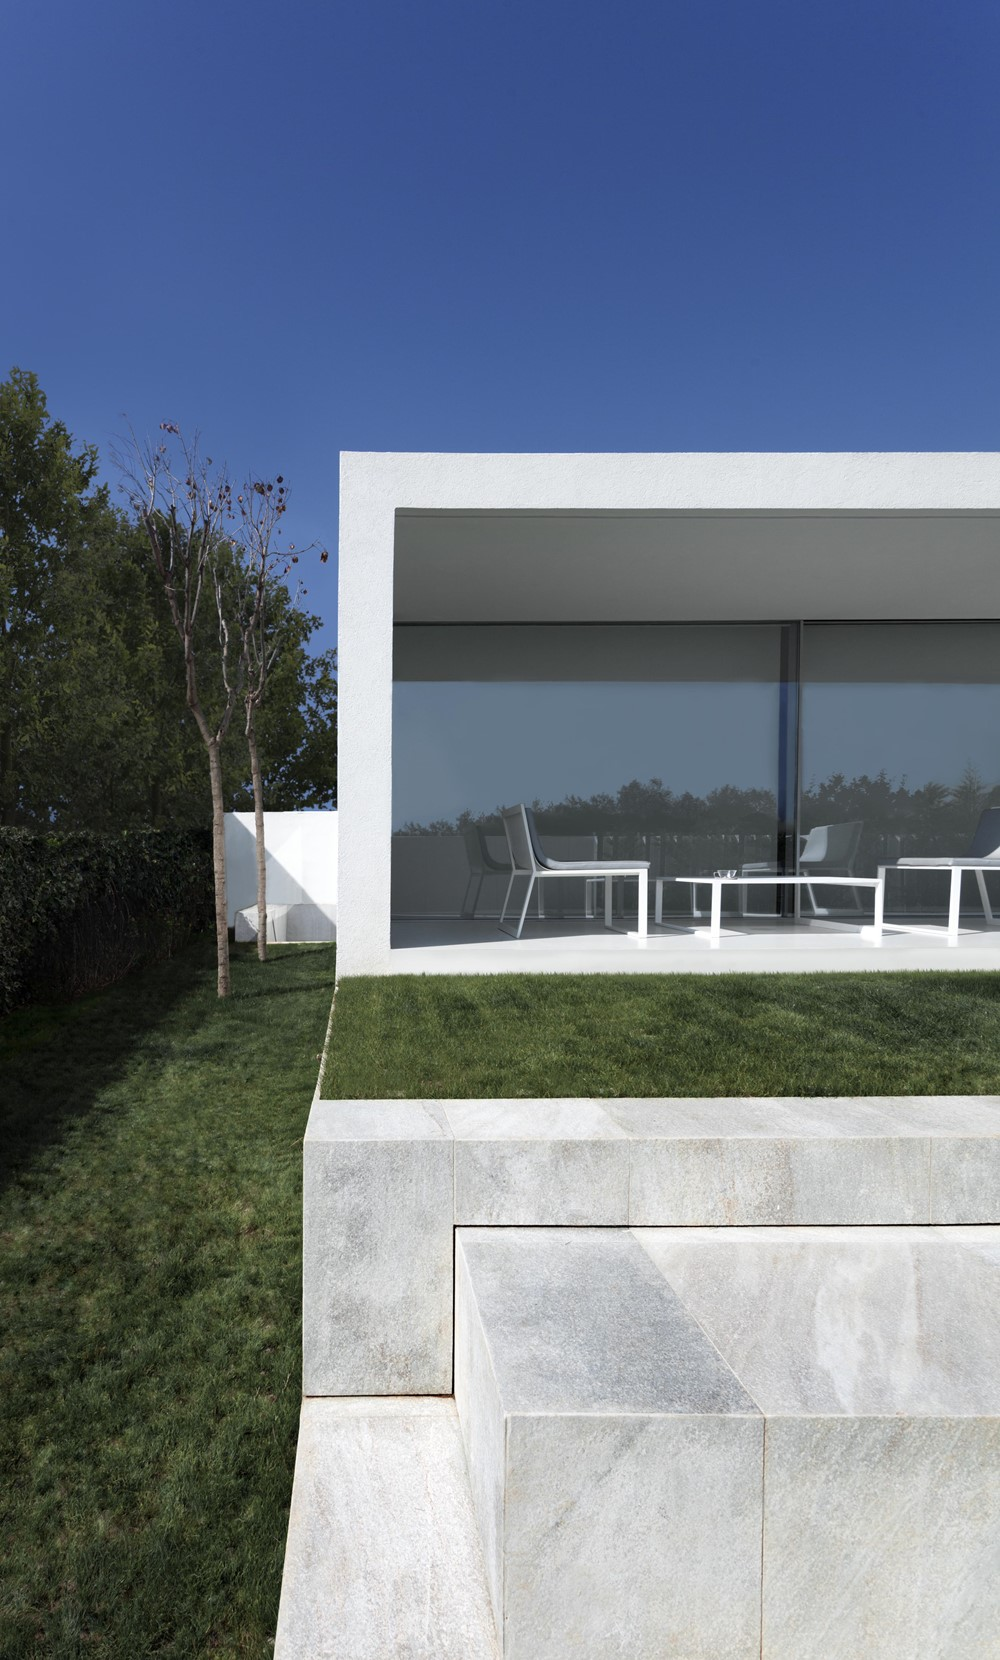 Breeze house by fran silvestre arquitectos myhouseidea - Fran silvestre arquitectos ...